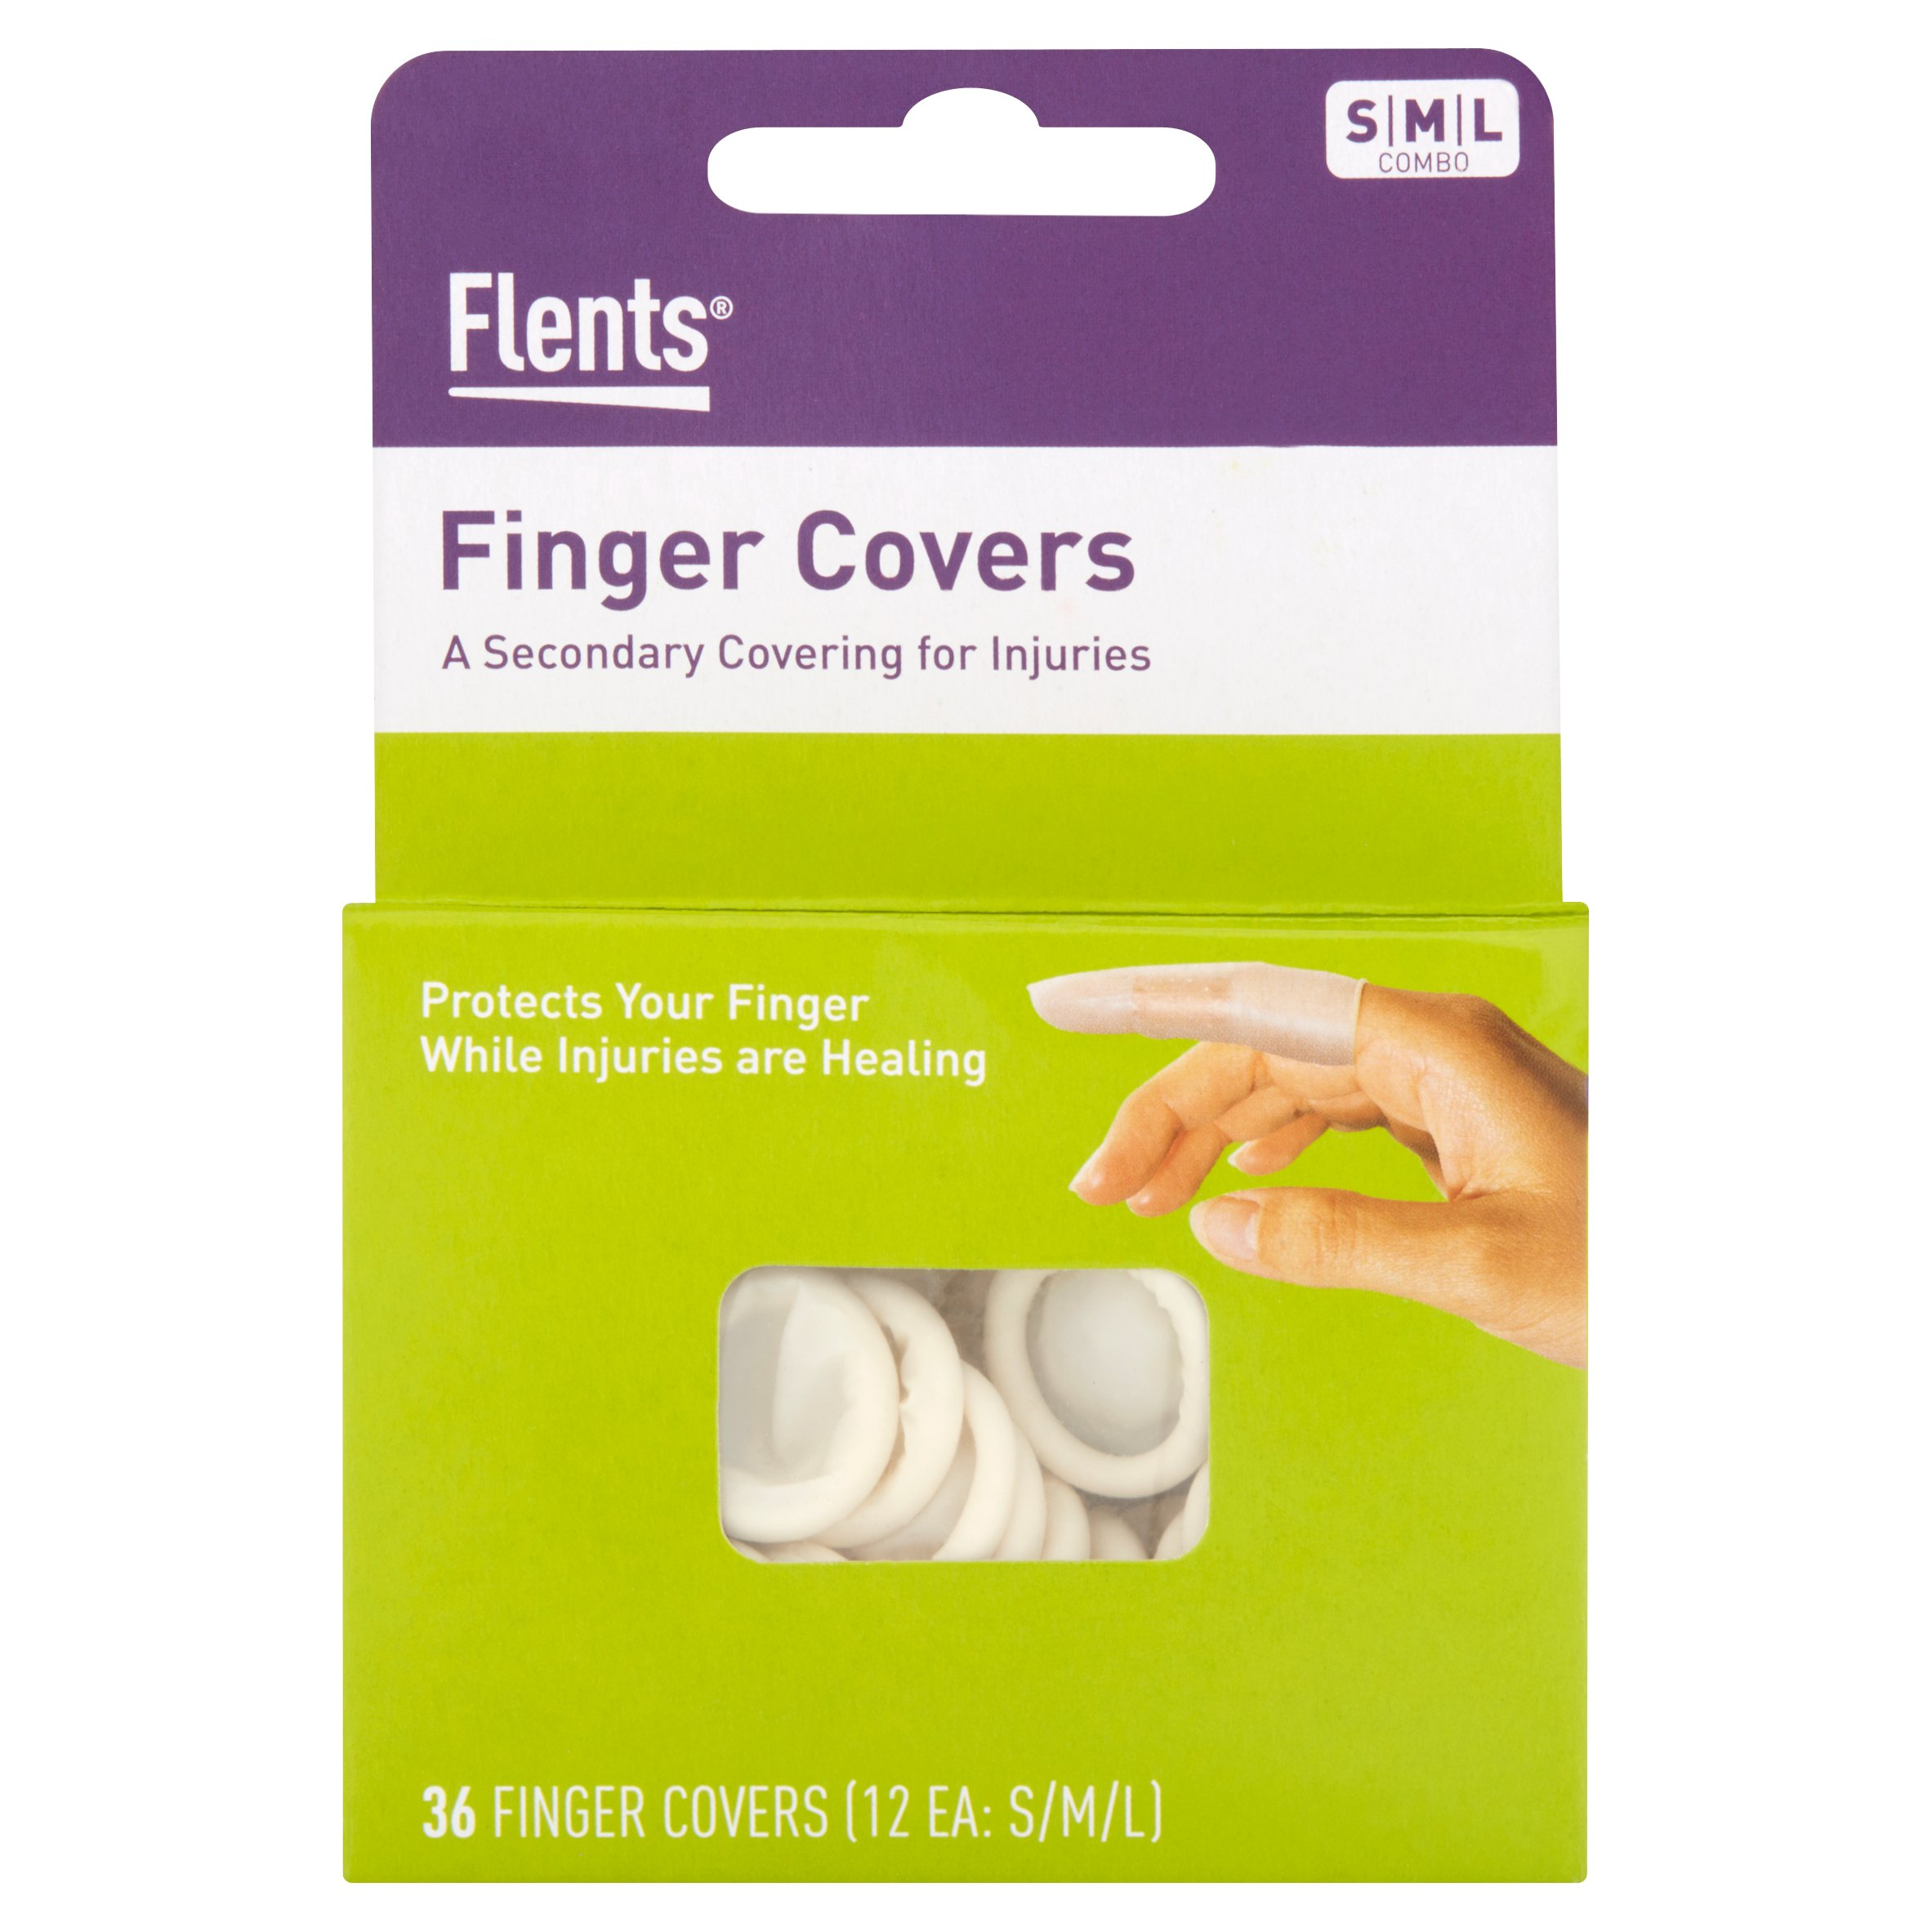 Flents SML Combo Finger Covers, 36 count